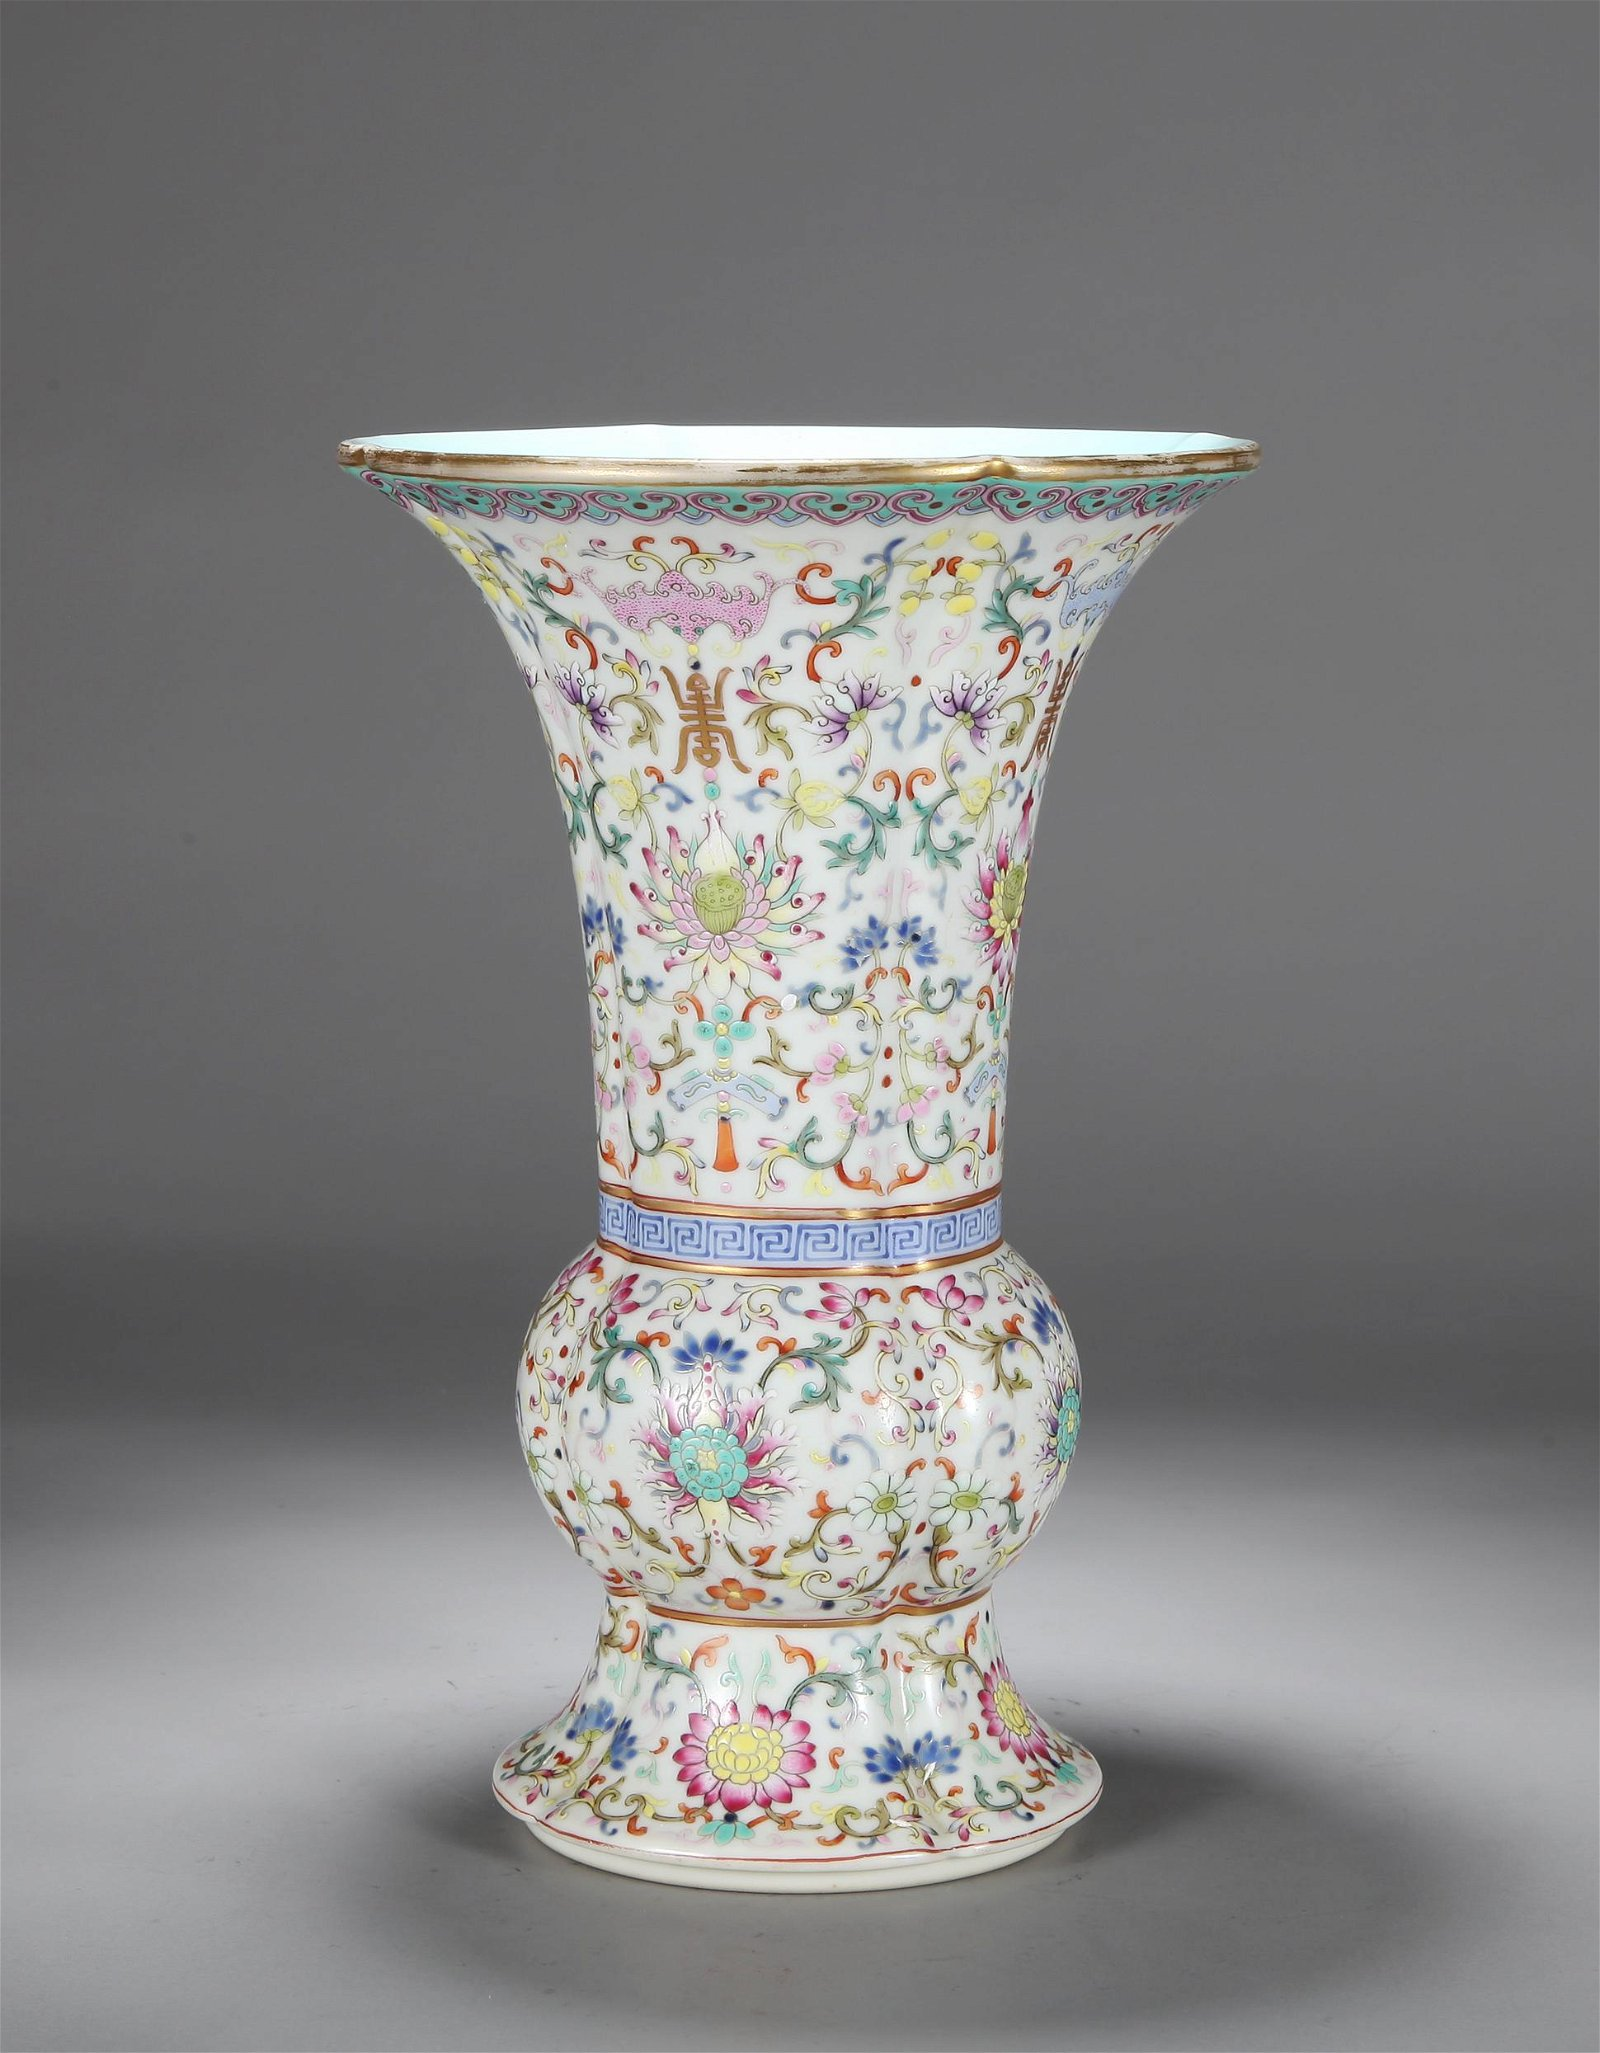 A CHINESE FAMILLE ROSE GU FORM VASE, QING DYNASTY